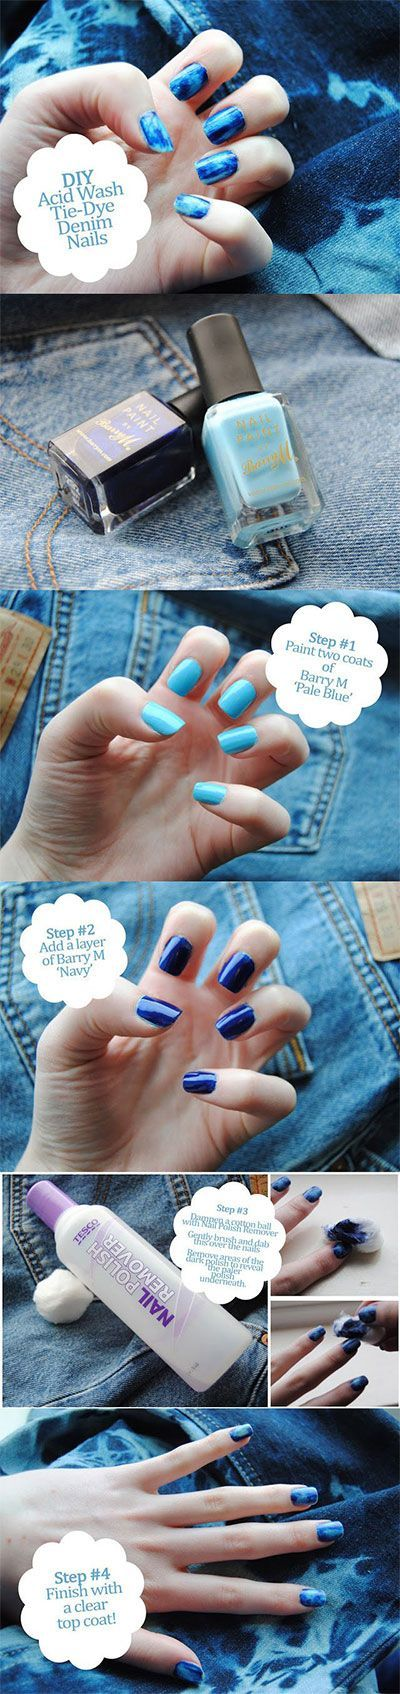 198 best simple nail art designs images on pinterest nail nice 25 very easy simple step by step nail art tutorials for beginners learners diy nails tie dyetie prinsesfo Image collections